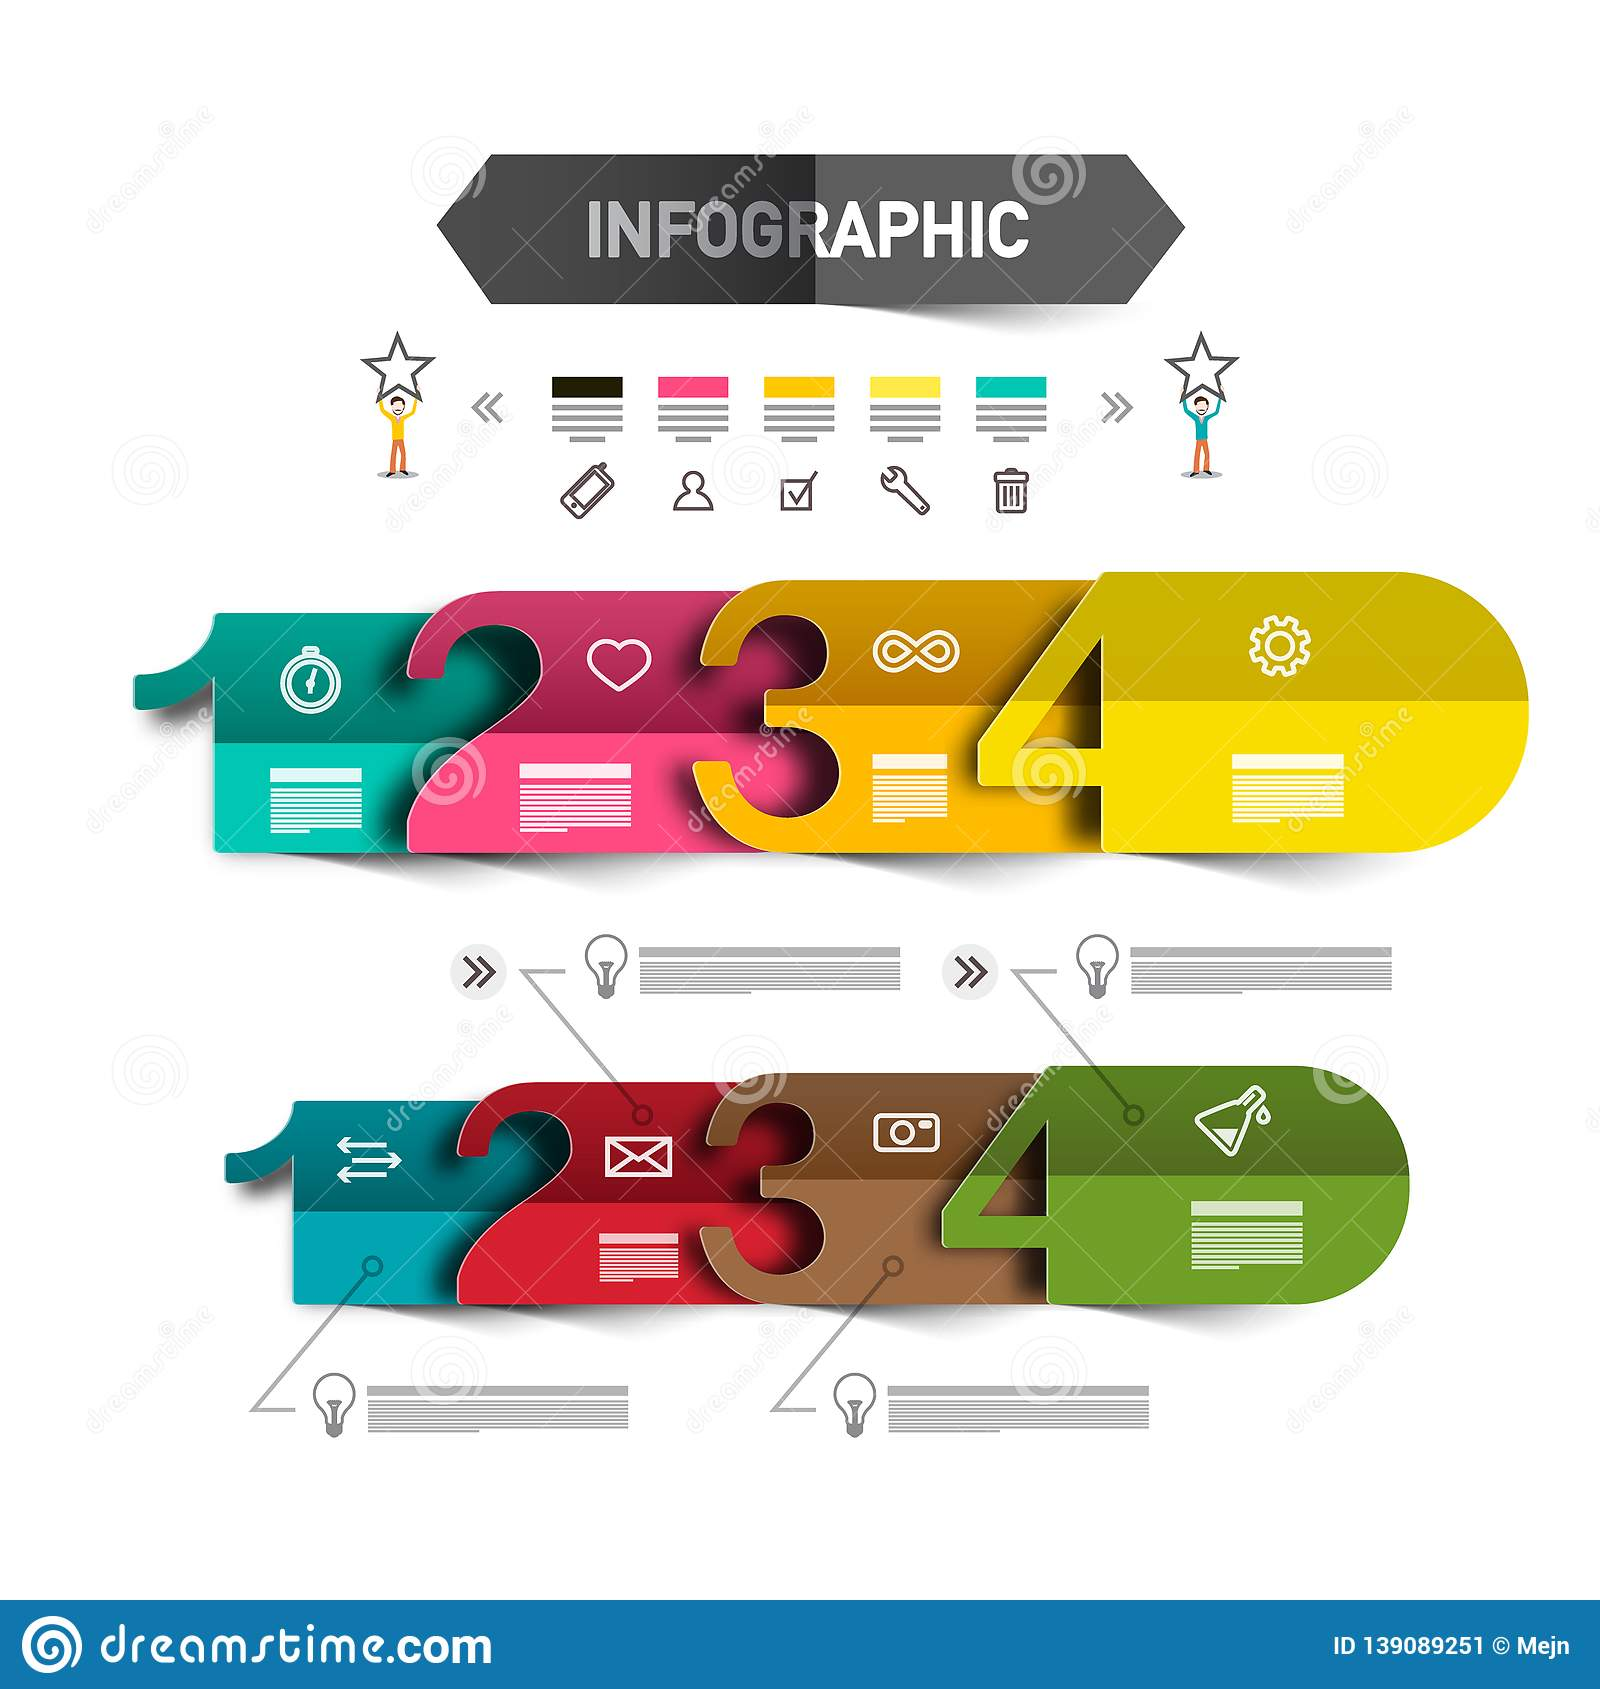 Four Steps Infographic Template with Icons